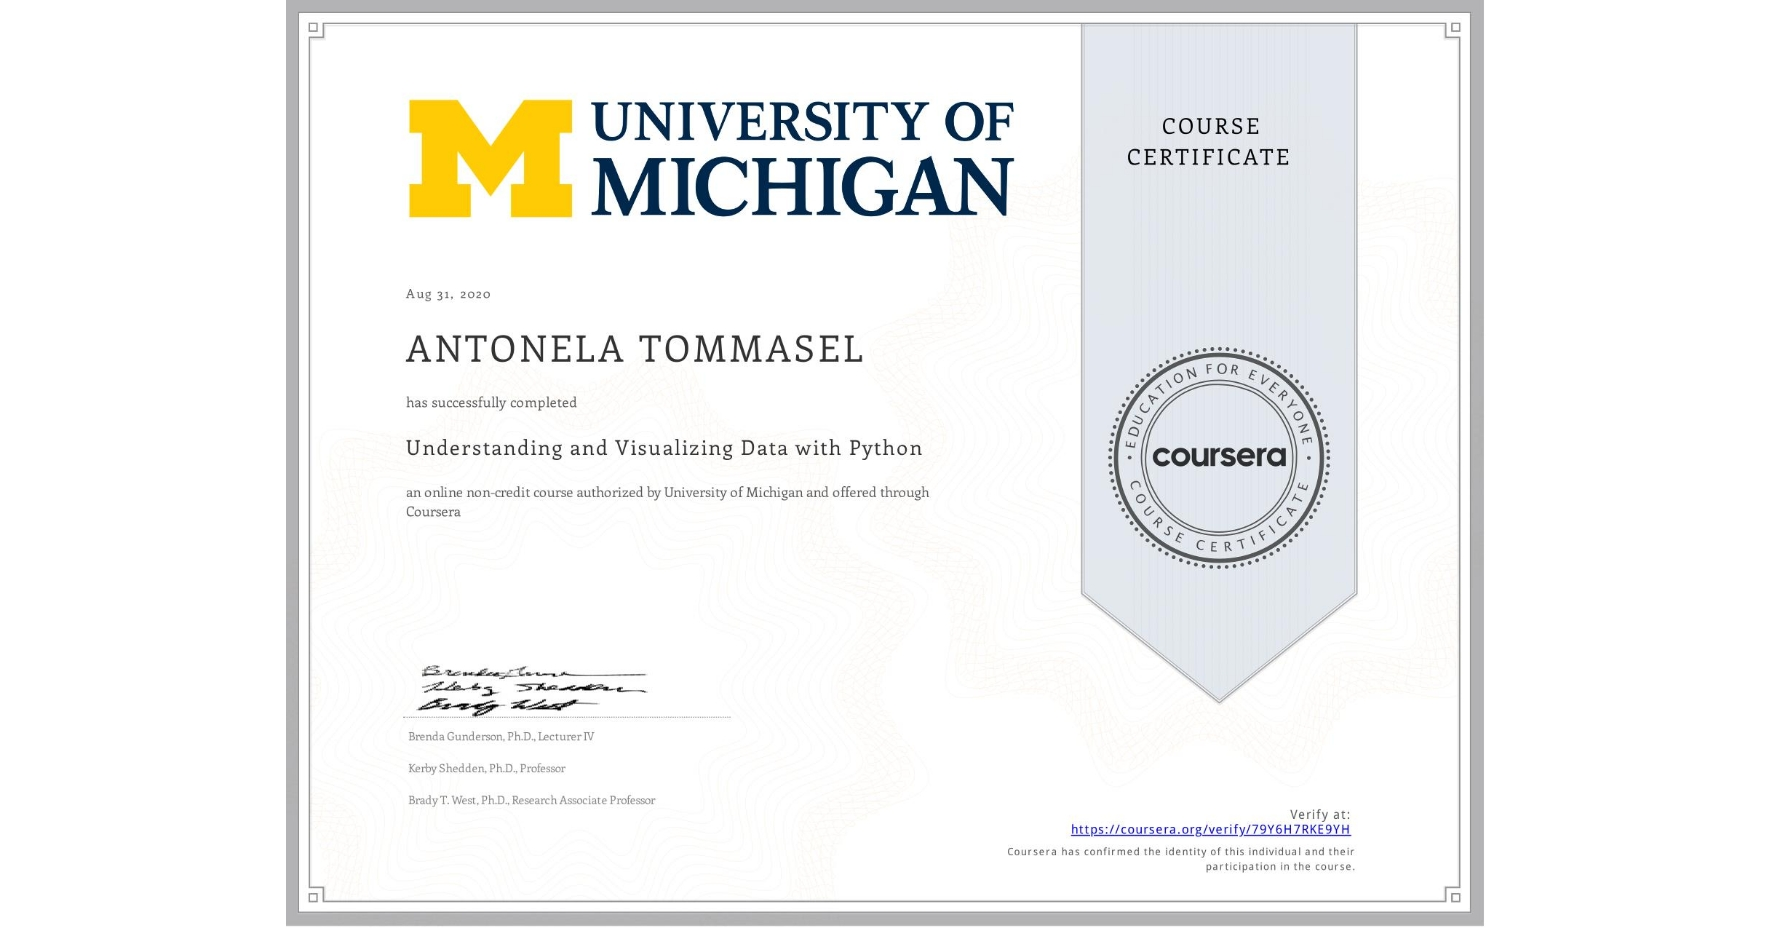 View certificate for Antonela Tommasel, Understanding and Visualizing Data with Python, an online non-credit course authorized by University of Michigan and offered through Coursera